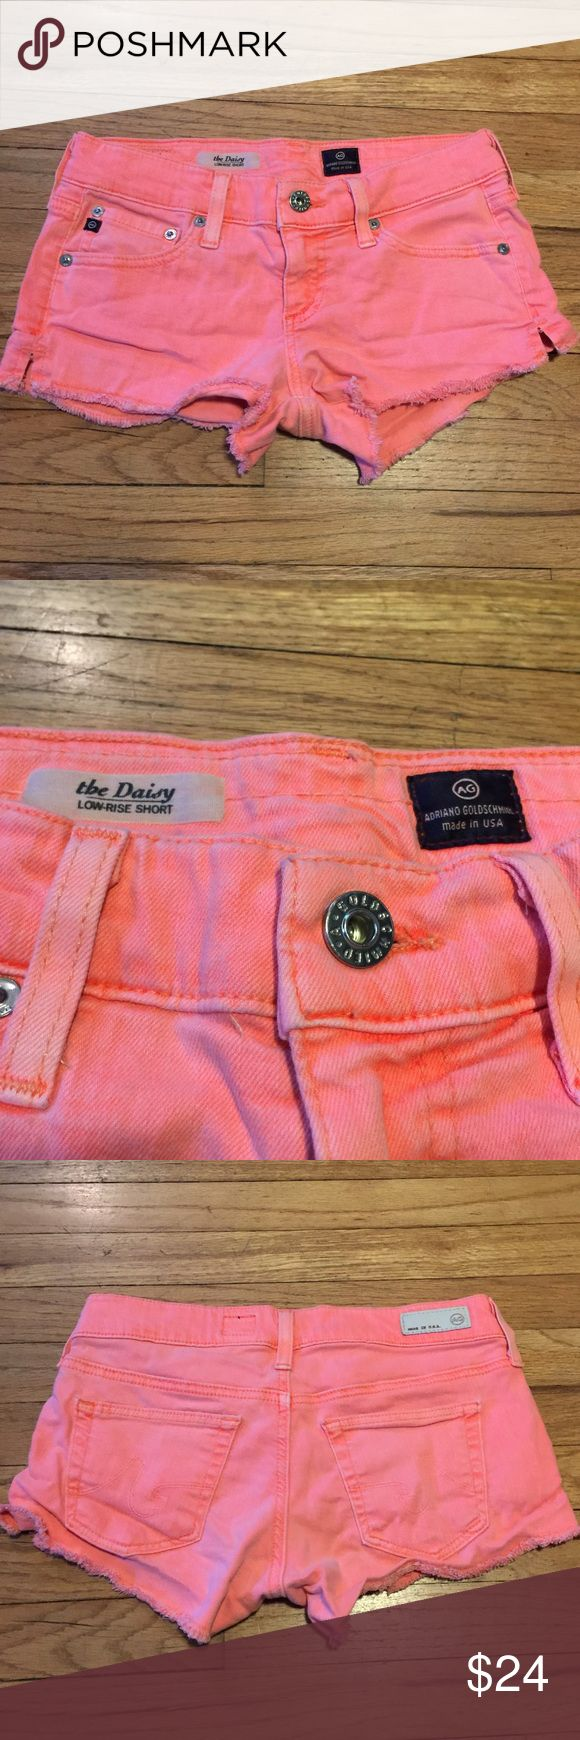 Adriano Goldschmied Daisy orange jean shorts - 25 Adriano Goldschmied The Daisy orange jean shorts - 25. Waist - 14 inches. Rise - 7 inches. Inseam - 2 inches. Great shape AG Adriano Goldschmied Shorts Jean Shorts